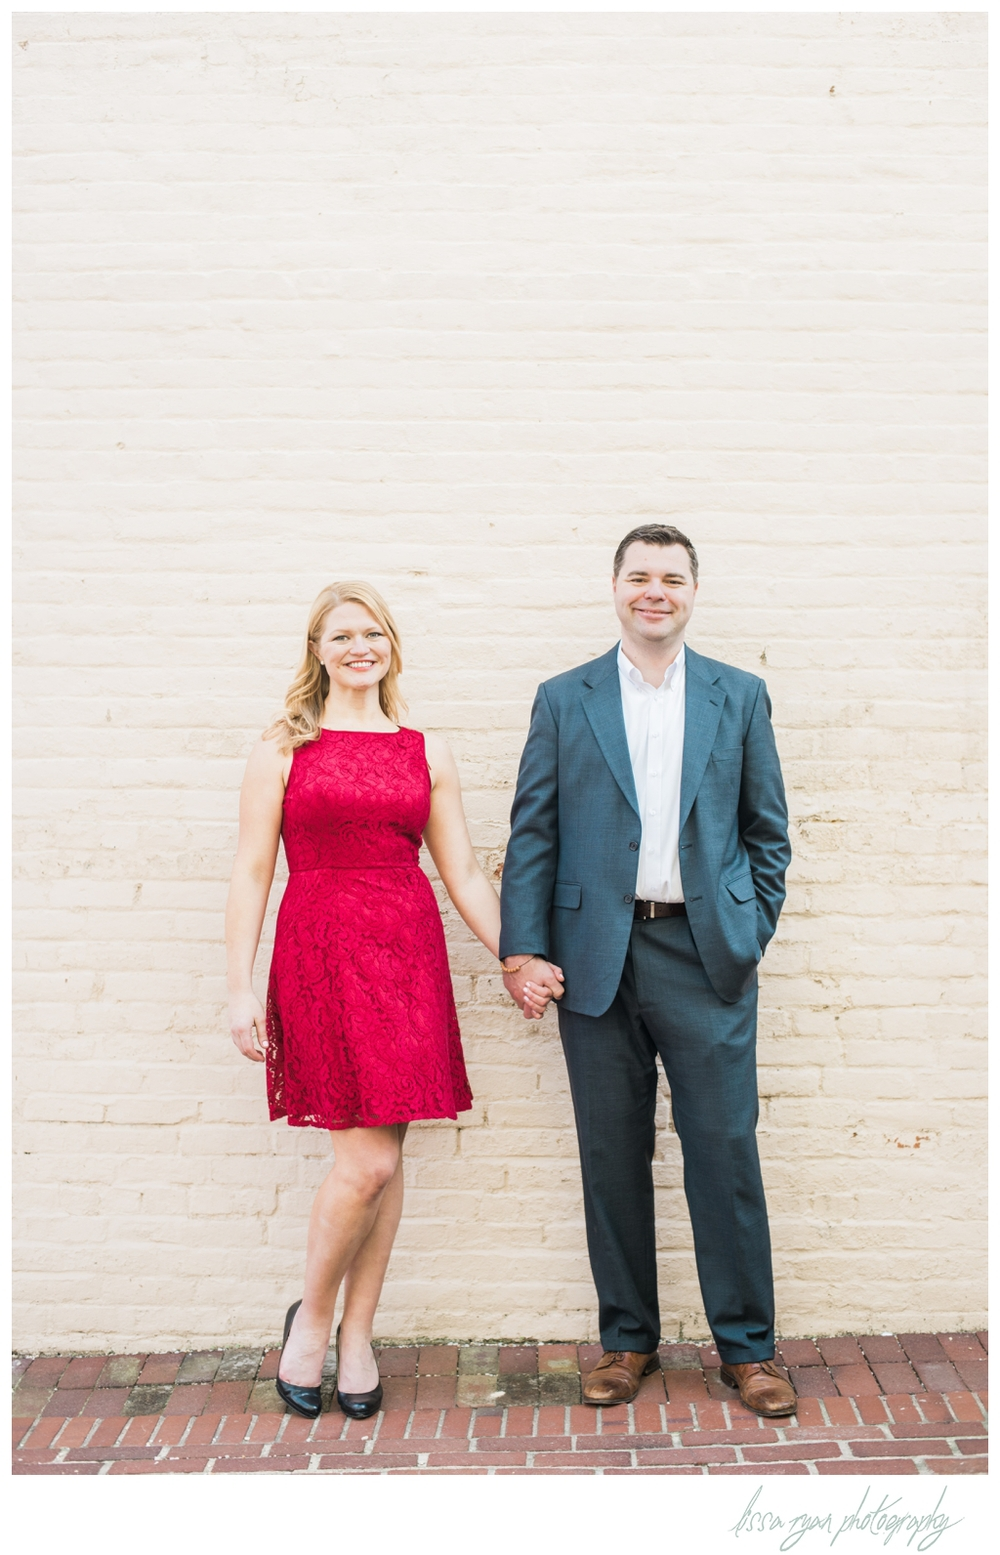 old town alexandria virginia engagement session dc wedding photographer lissa ryan photography